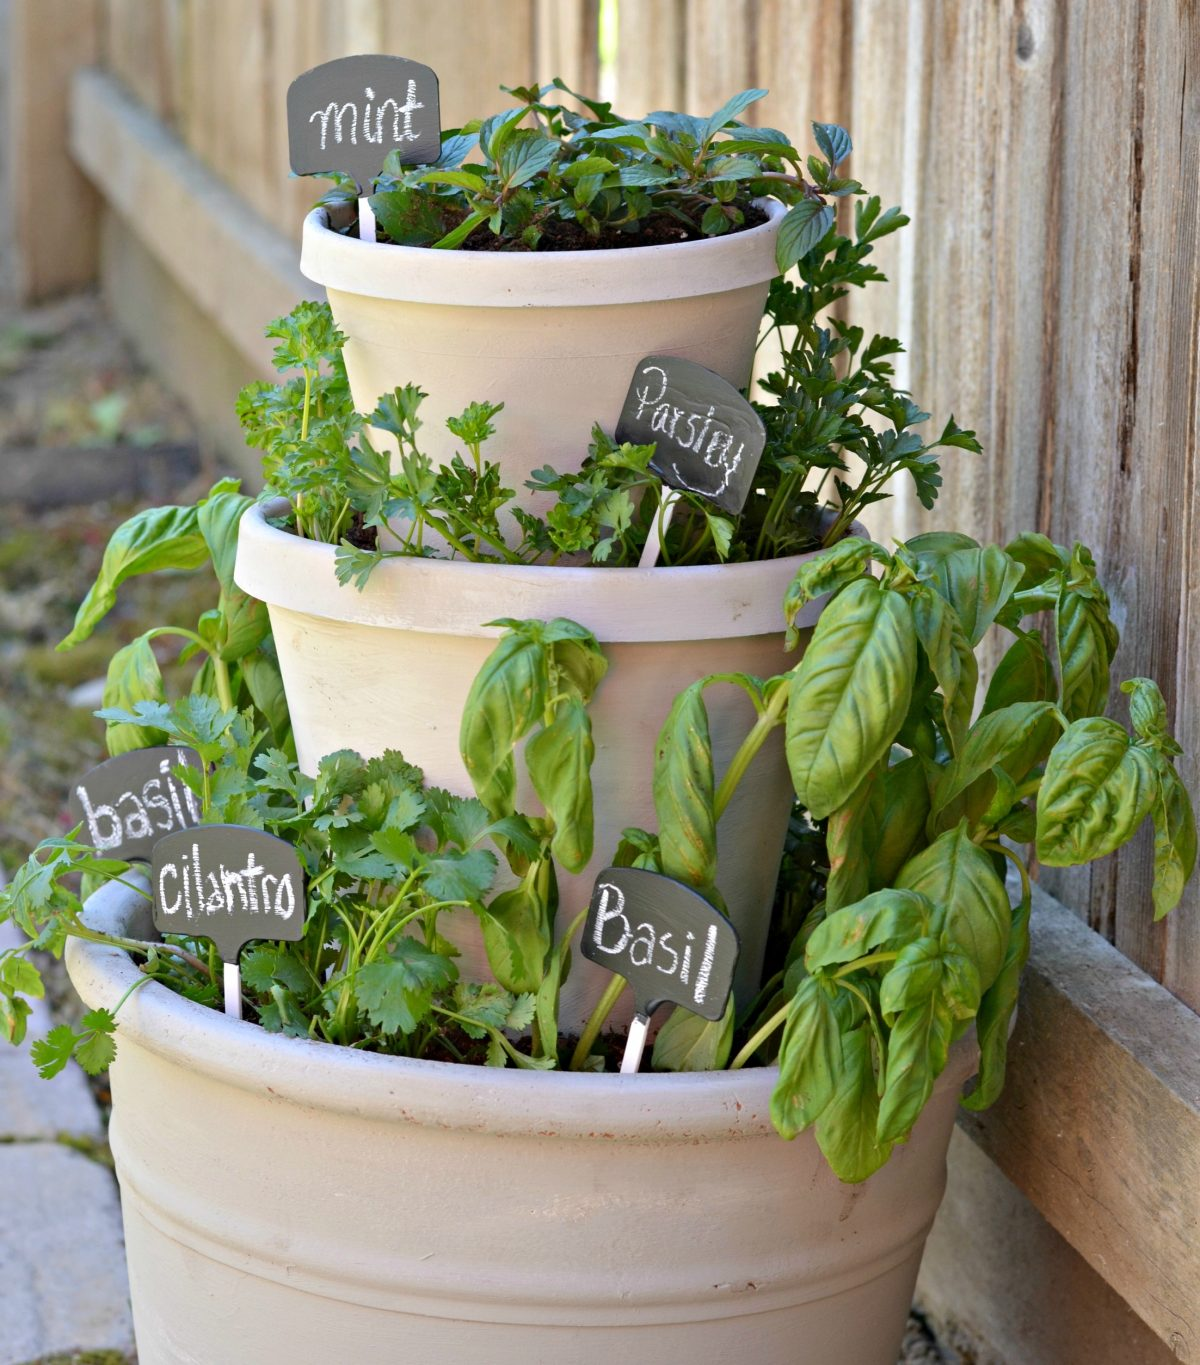 tiered planter with various types of fresh herbs growing inside